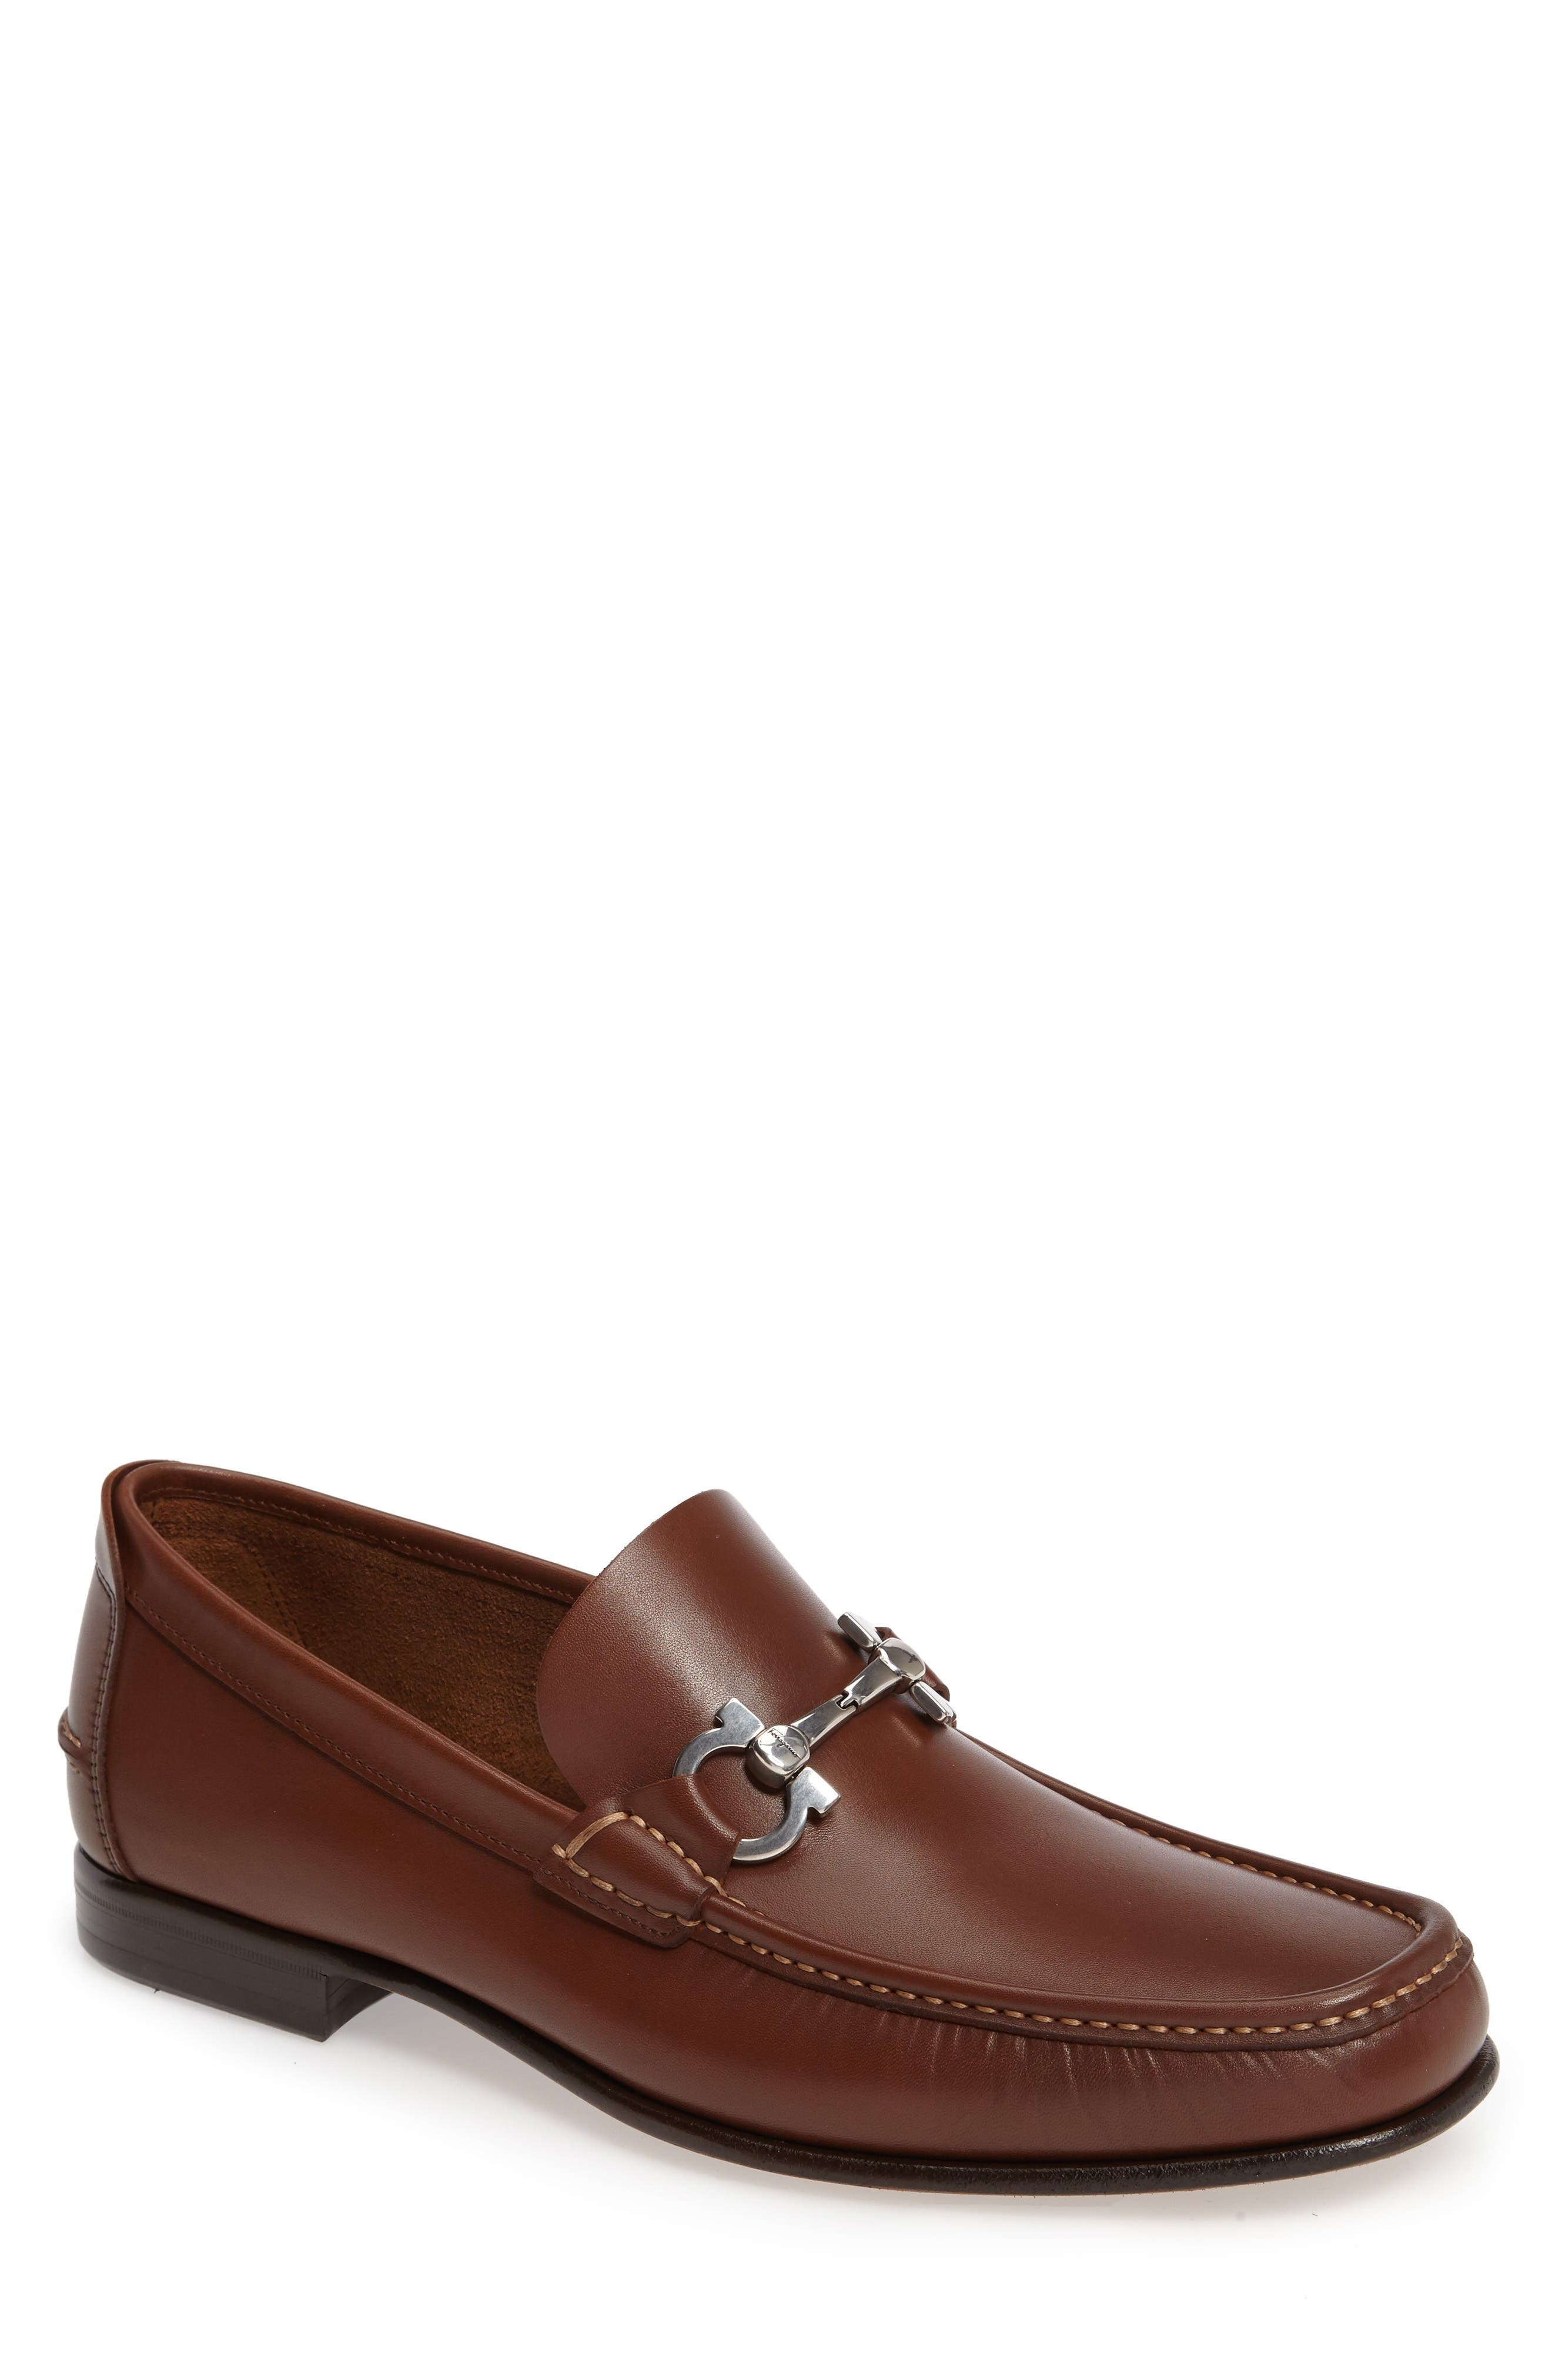 Bit Loafer,                         Main,                         color, Brown Leather